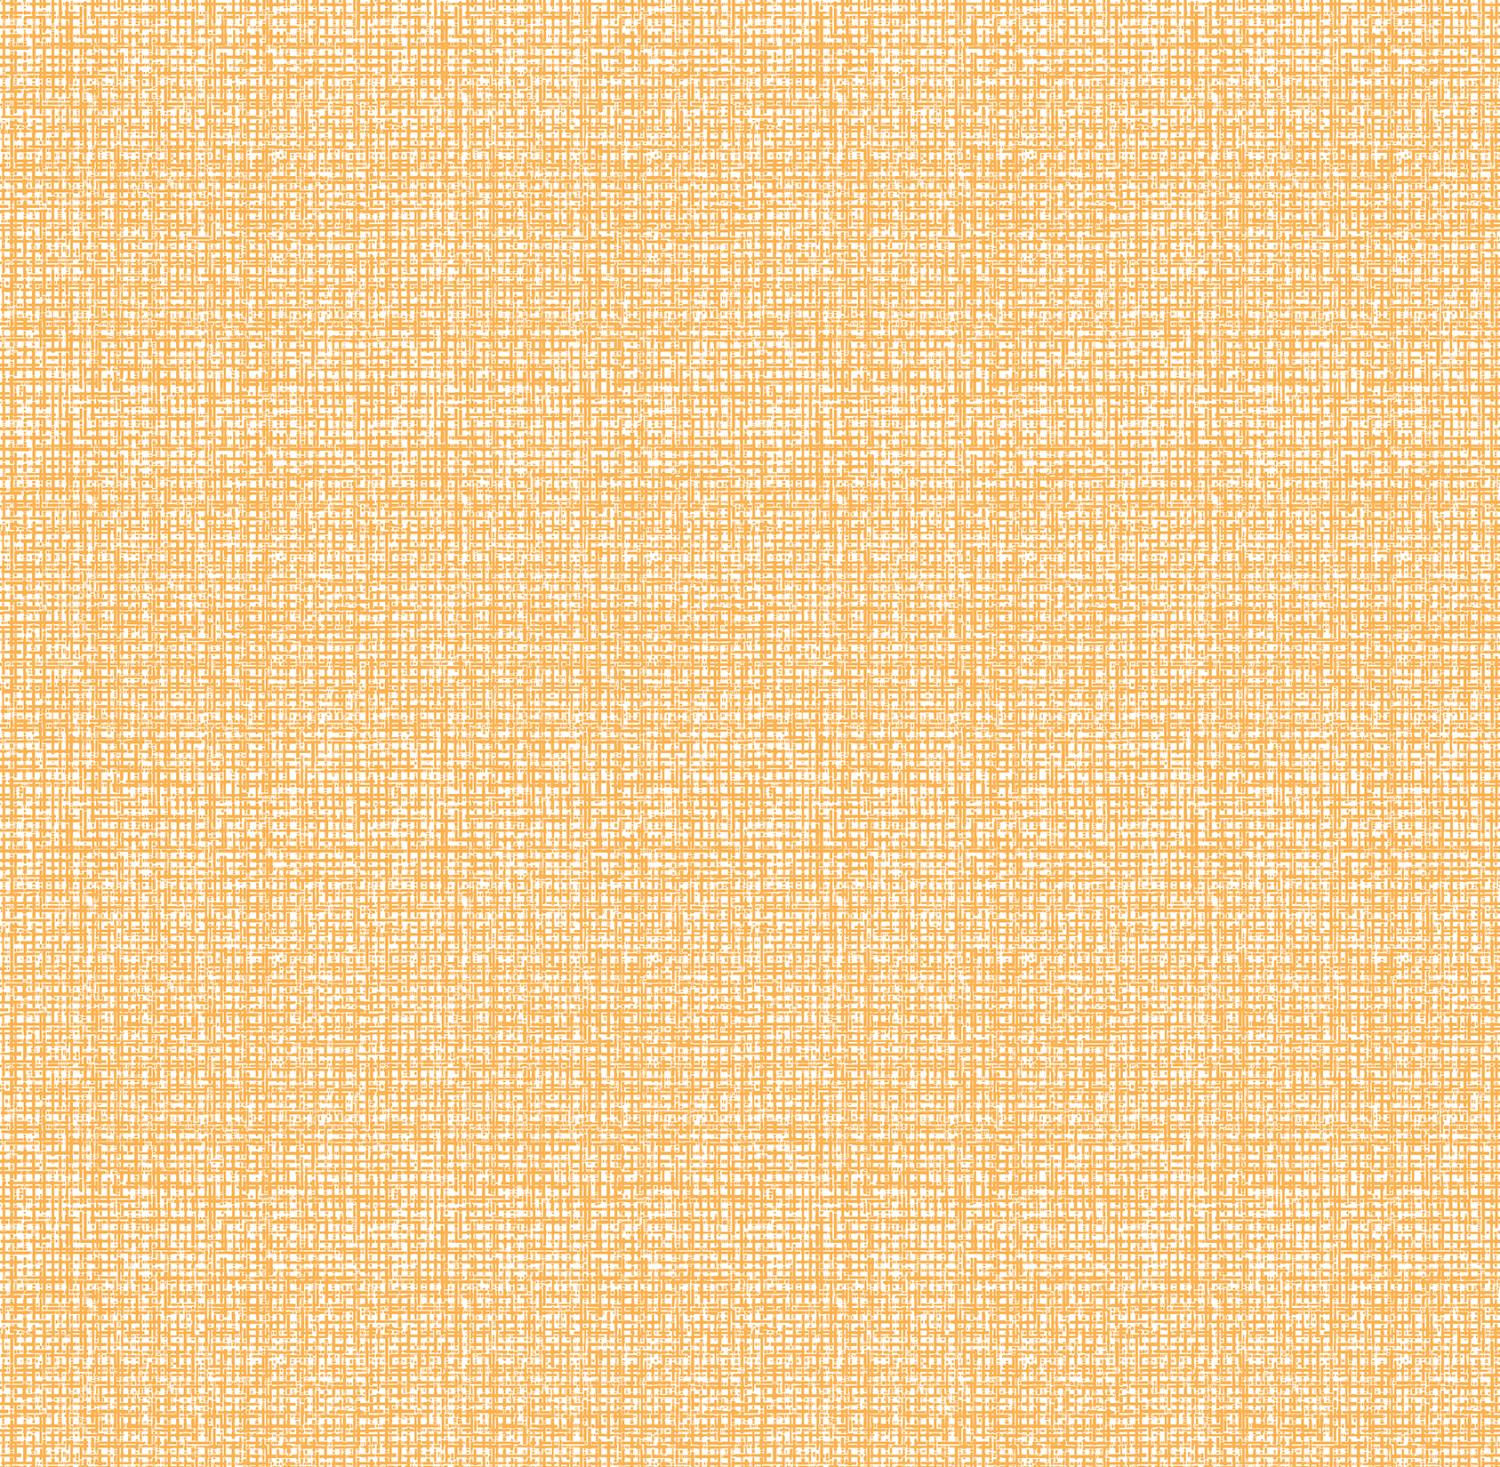 Color Weave #31 Light Orange